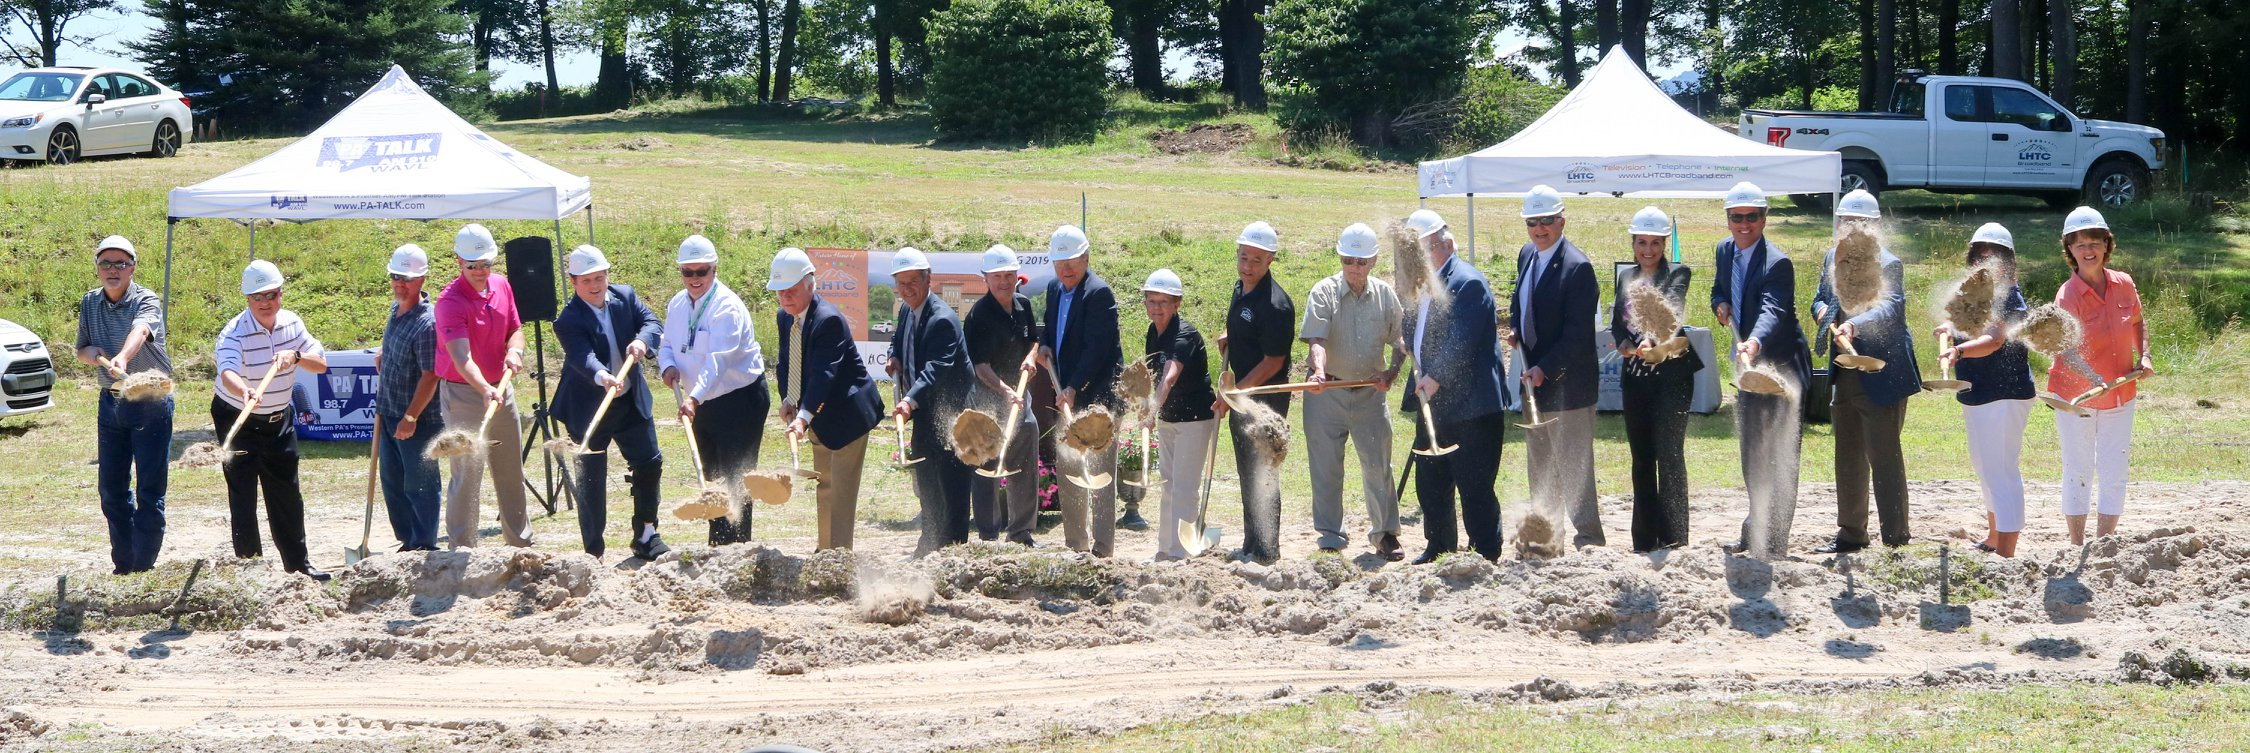 Laurel Highland Total Communications, Inc. Breaks Ground on a New Corporate Office Building